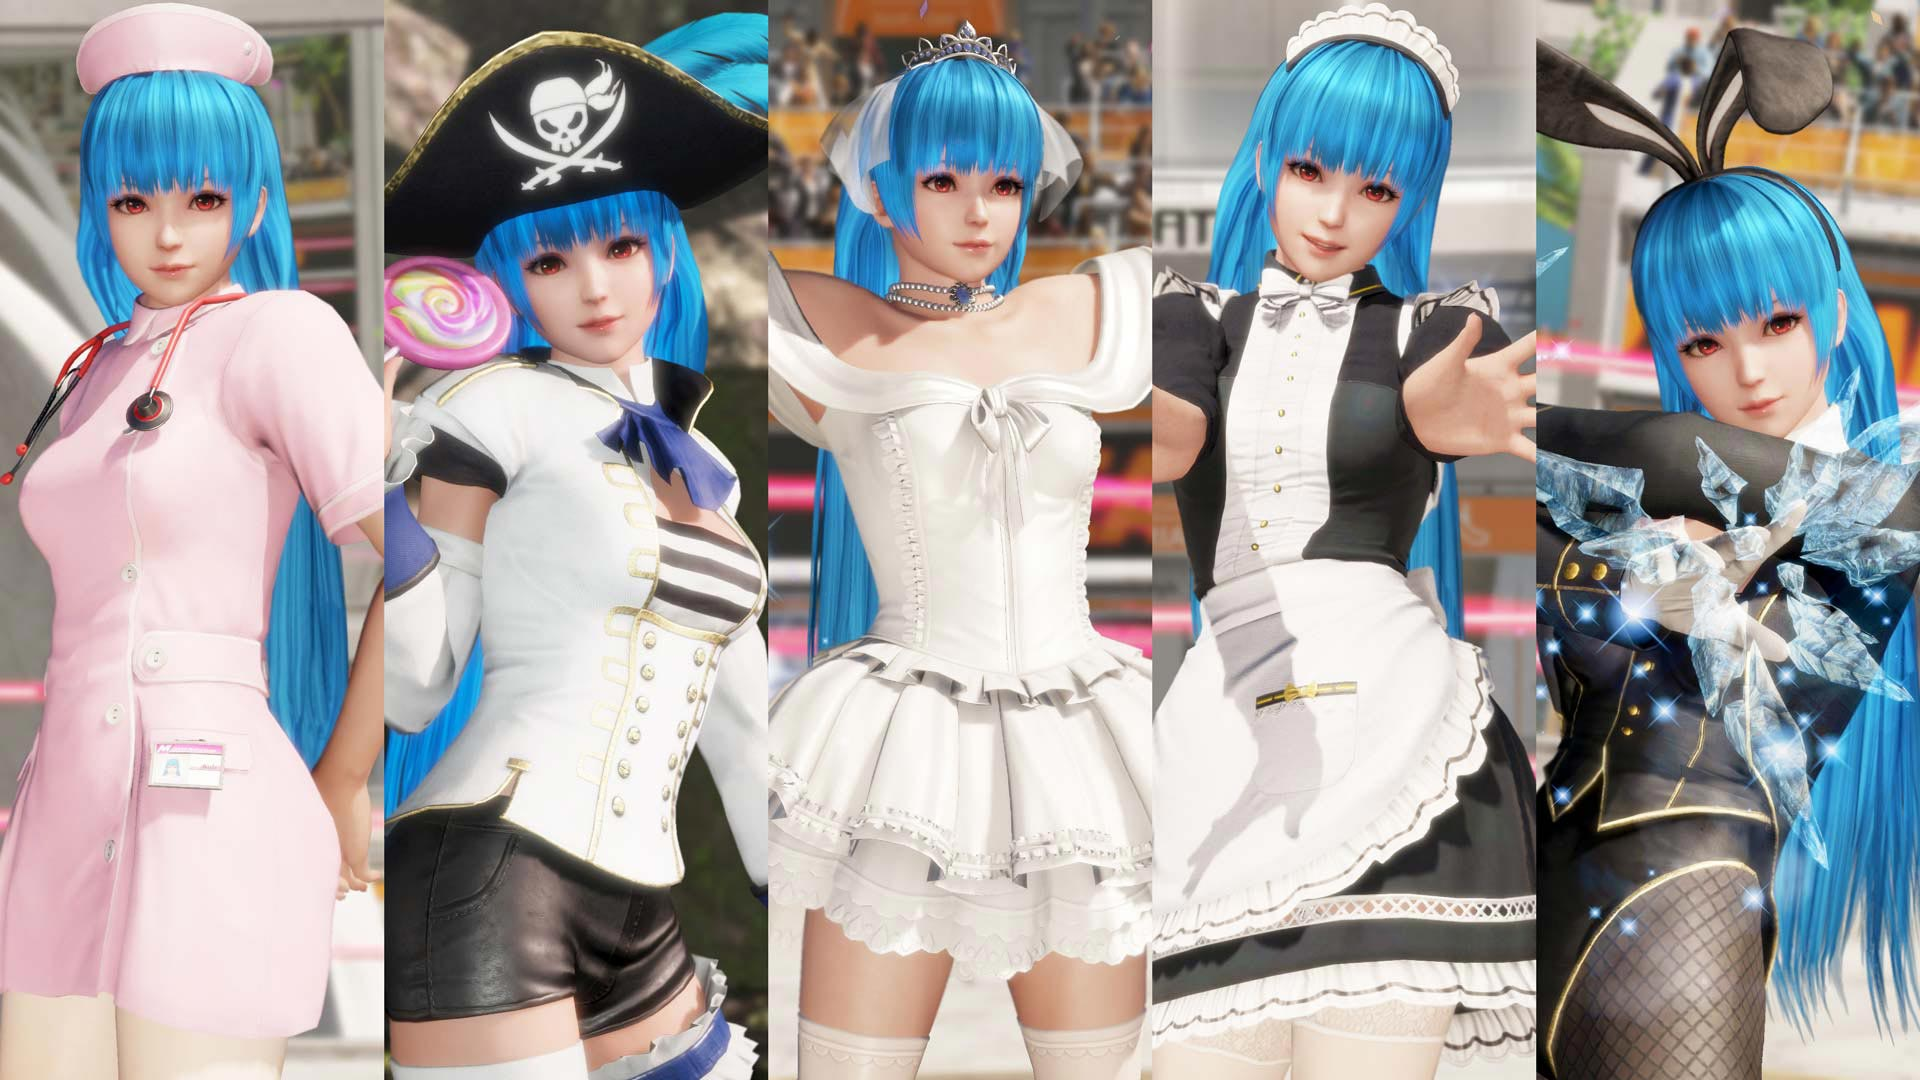 Kula and Mai in DOA6 1.06 4 out of 7 image gallery